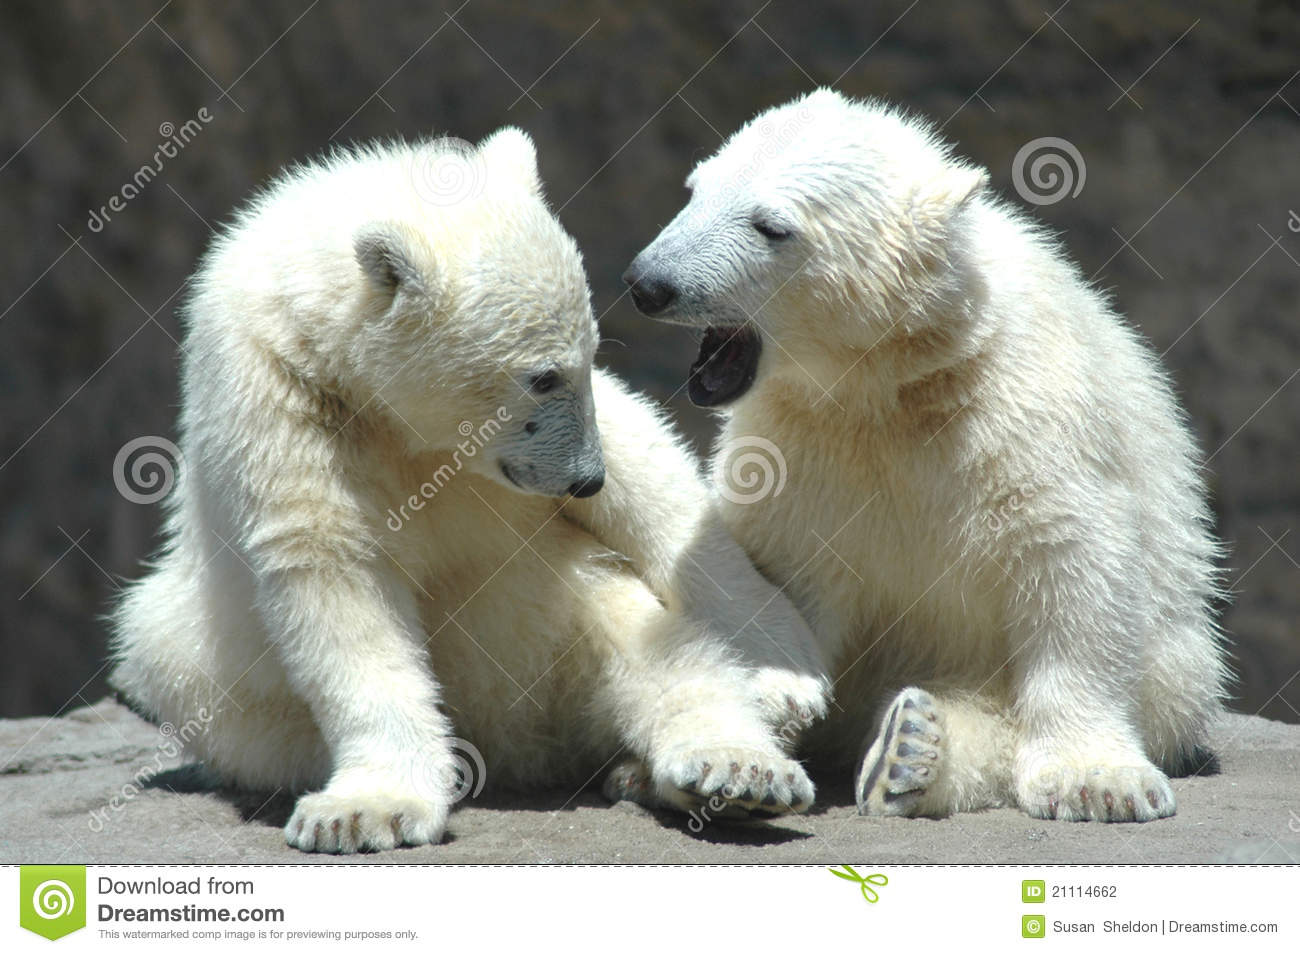 Wallpaper Cute Bear Two Young Polar Bears Playing Stock Photo Image Of